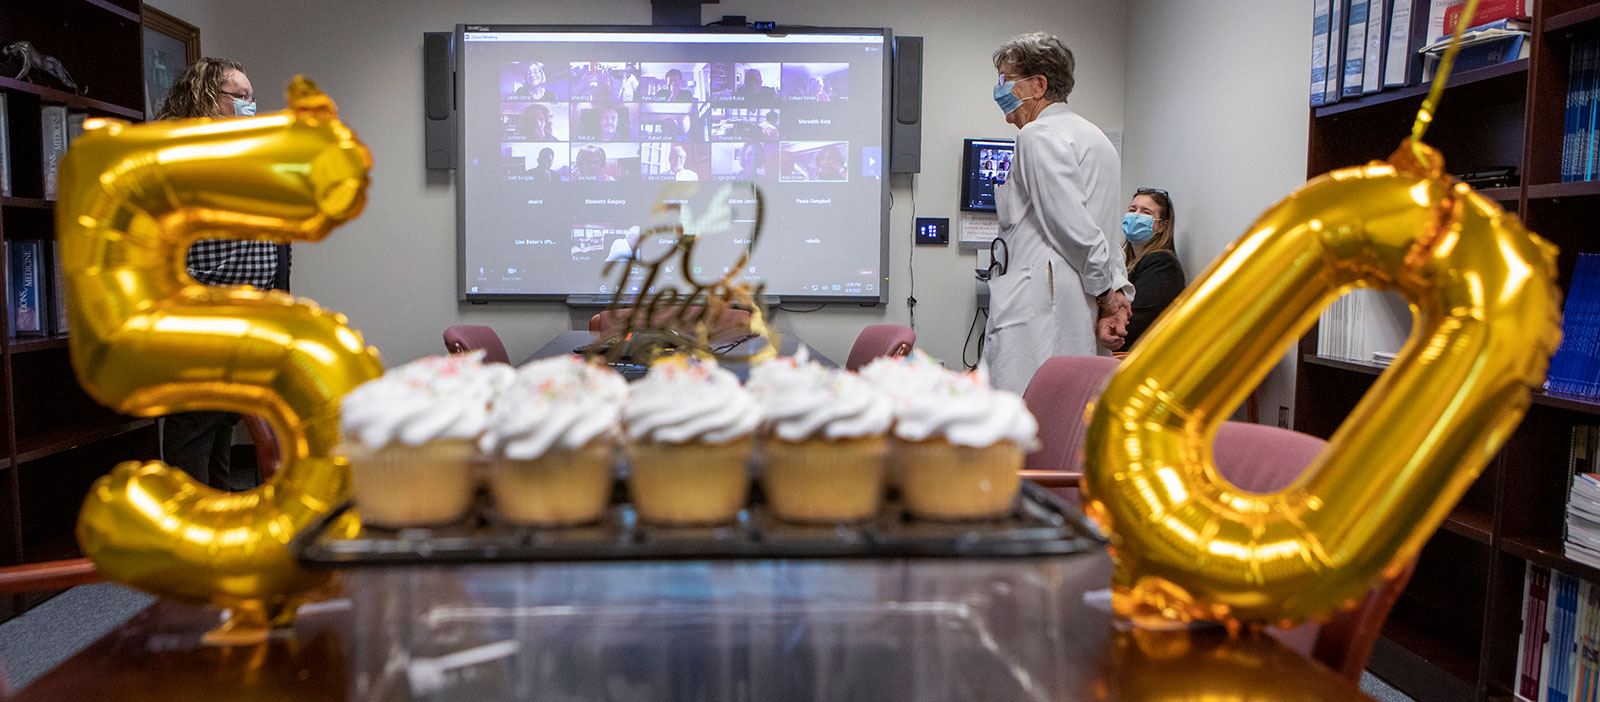 A photo shows balloons with the numbers 5 and 0 and a lot of cupcakes. A woman is standing in the background, smiling.